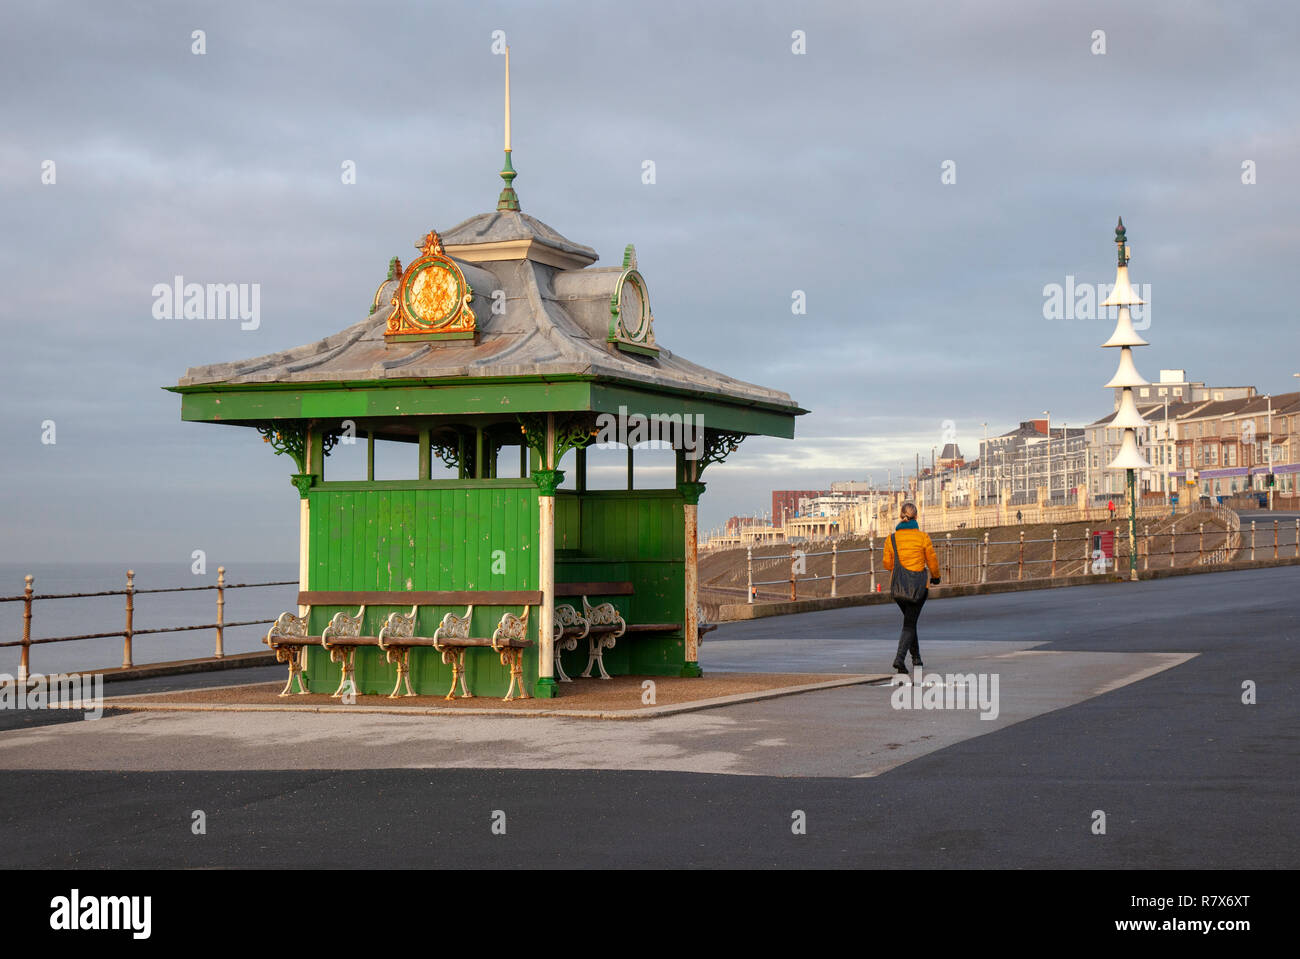 People passing decorated Edwardian seafront promenade Shelters in Blackpool, UK. The British seafront shelter is a public architecture that dates to the mid-19th century. Builders have employed structural cast & wrought iron, archetypal Victorian engineering materials and design with, decoration, curling, organic brackets and columns. - Stock Image